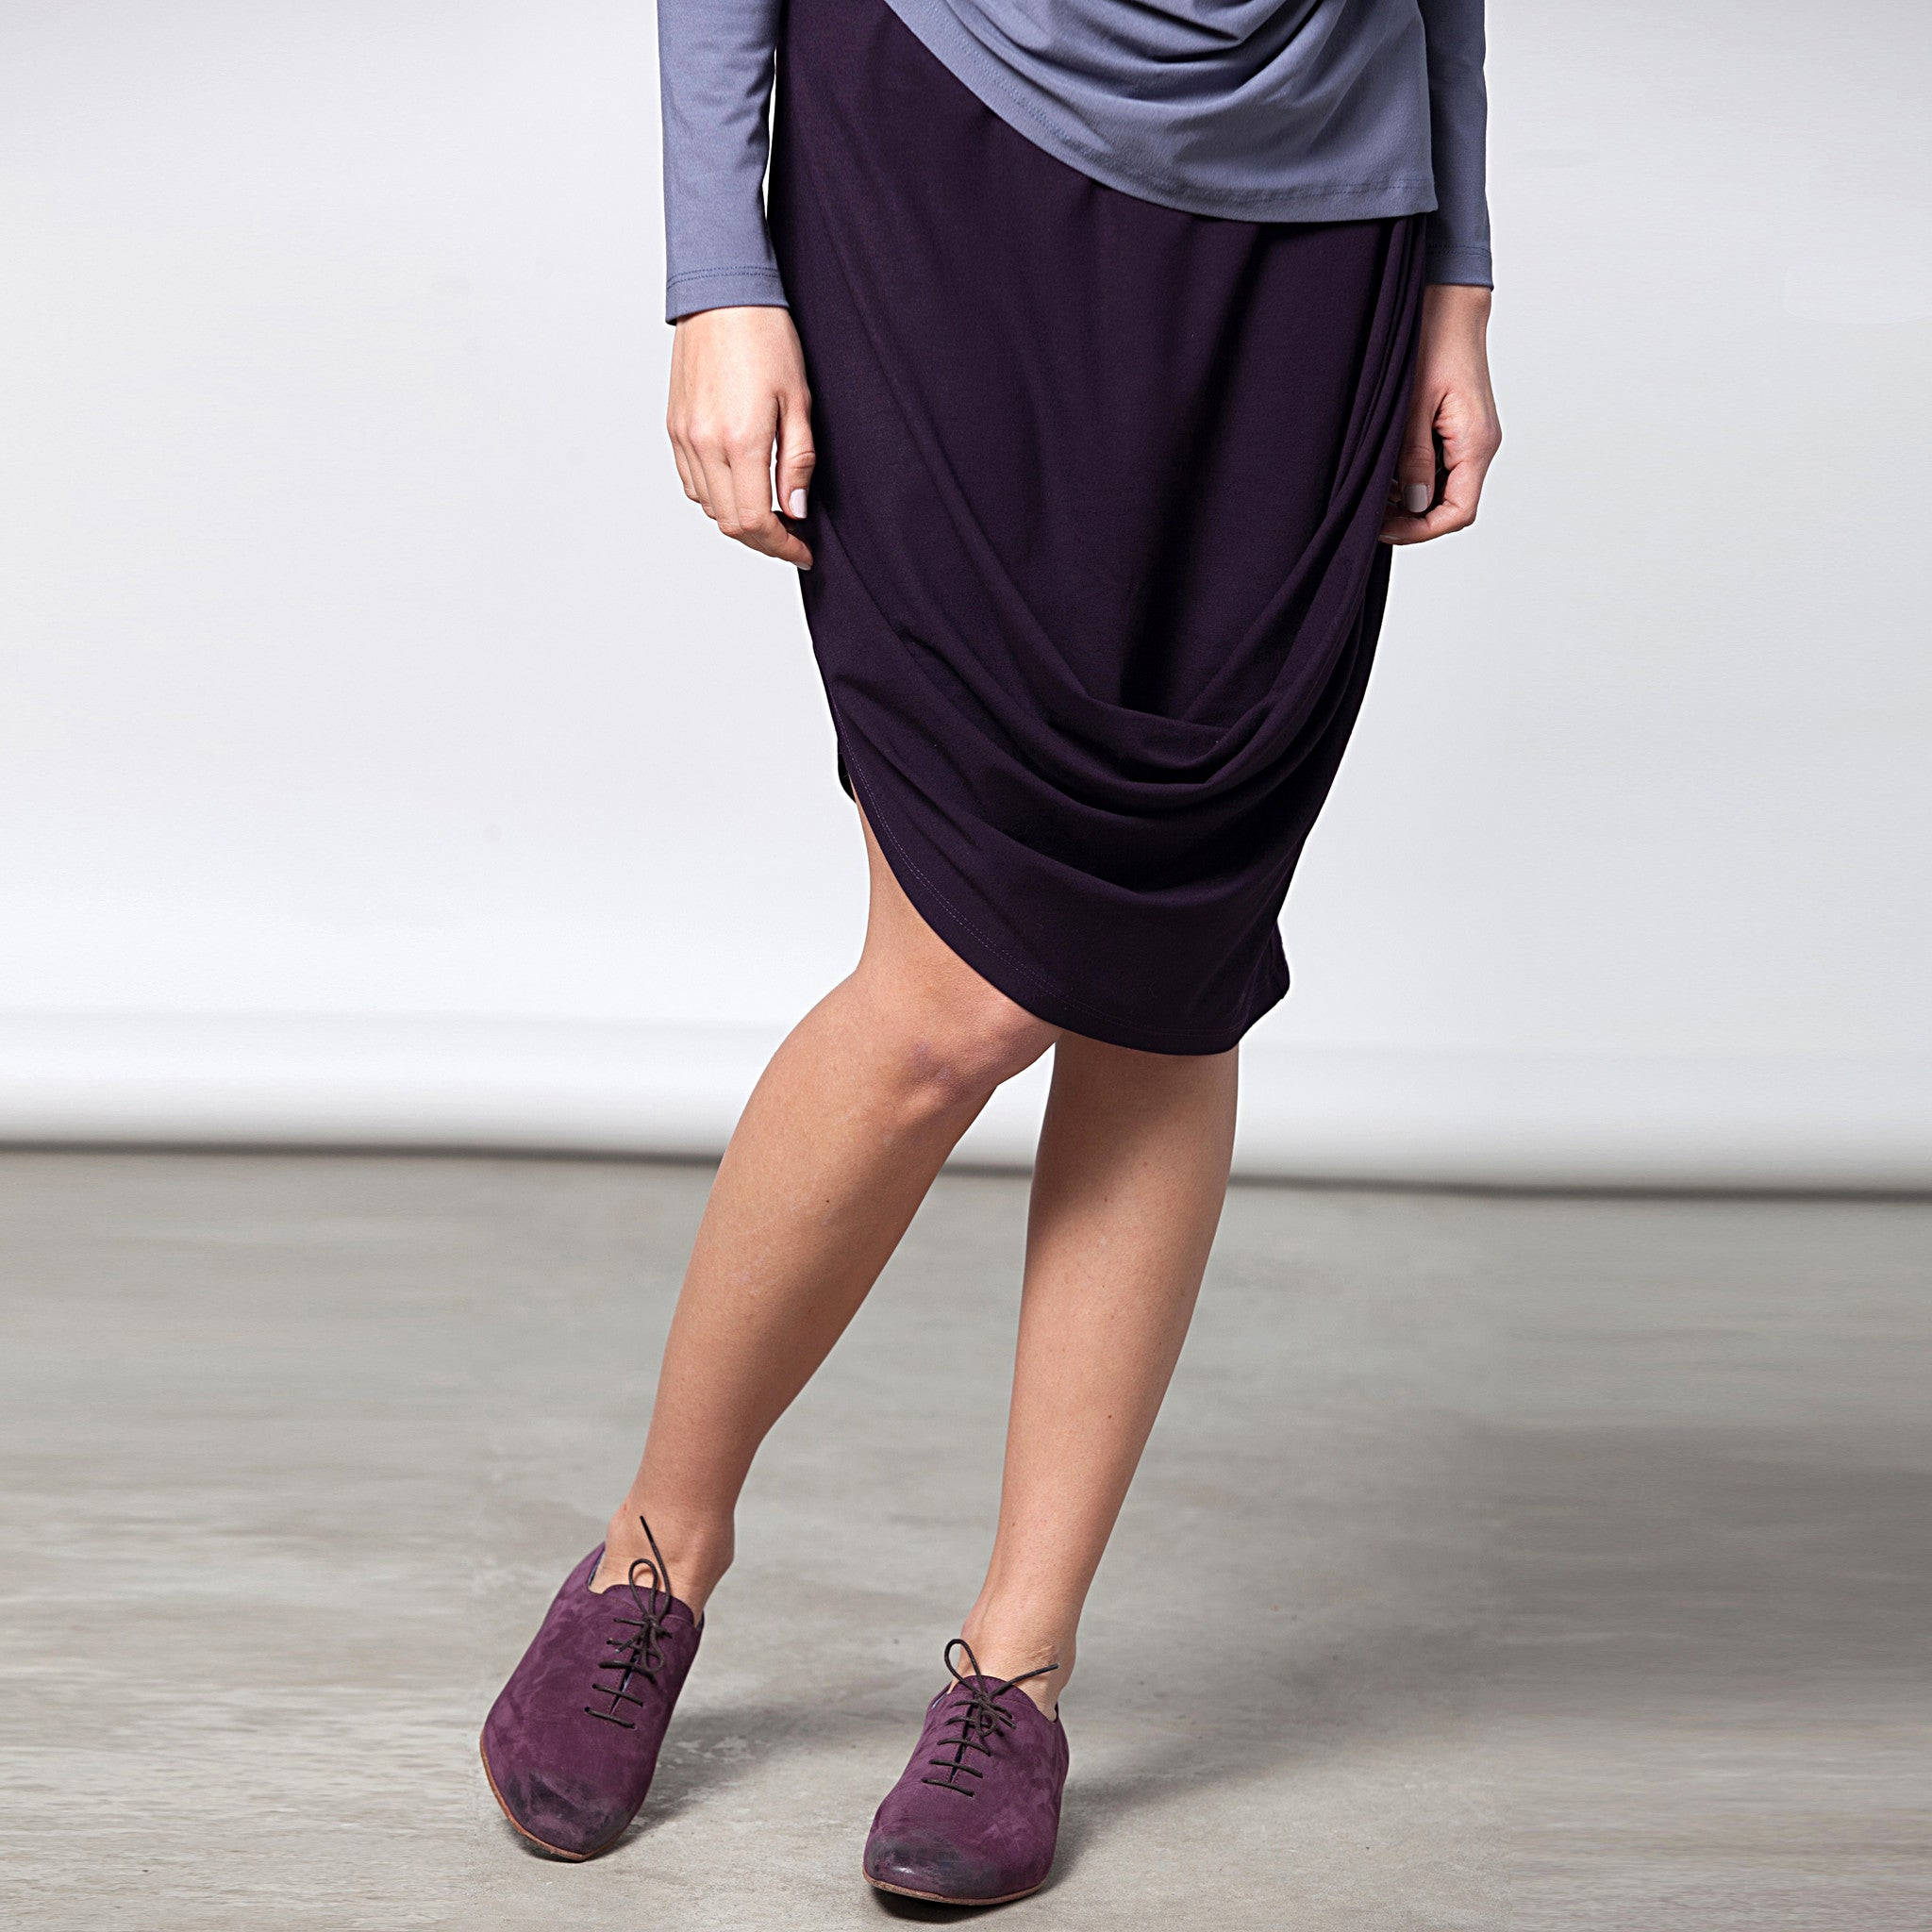 Sample Sale - Draped jersey skirt in grey stone size S-M - DuendeFashion  - 3